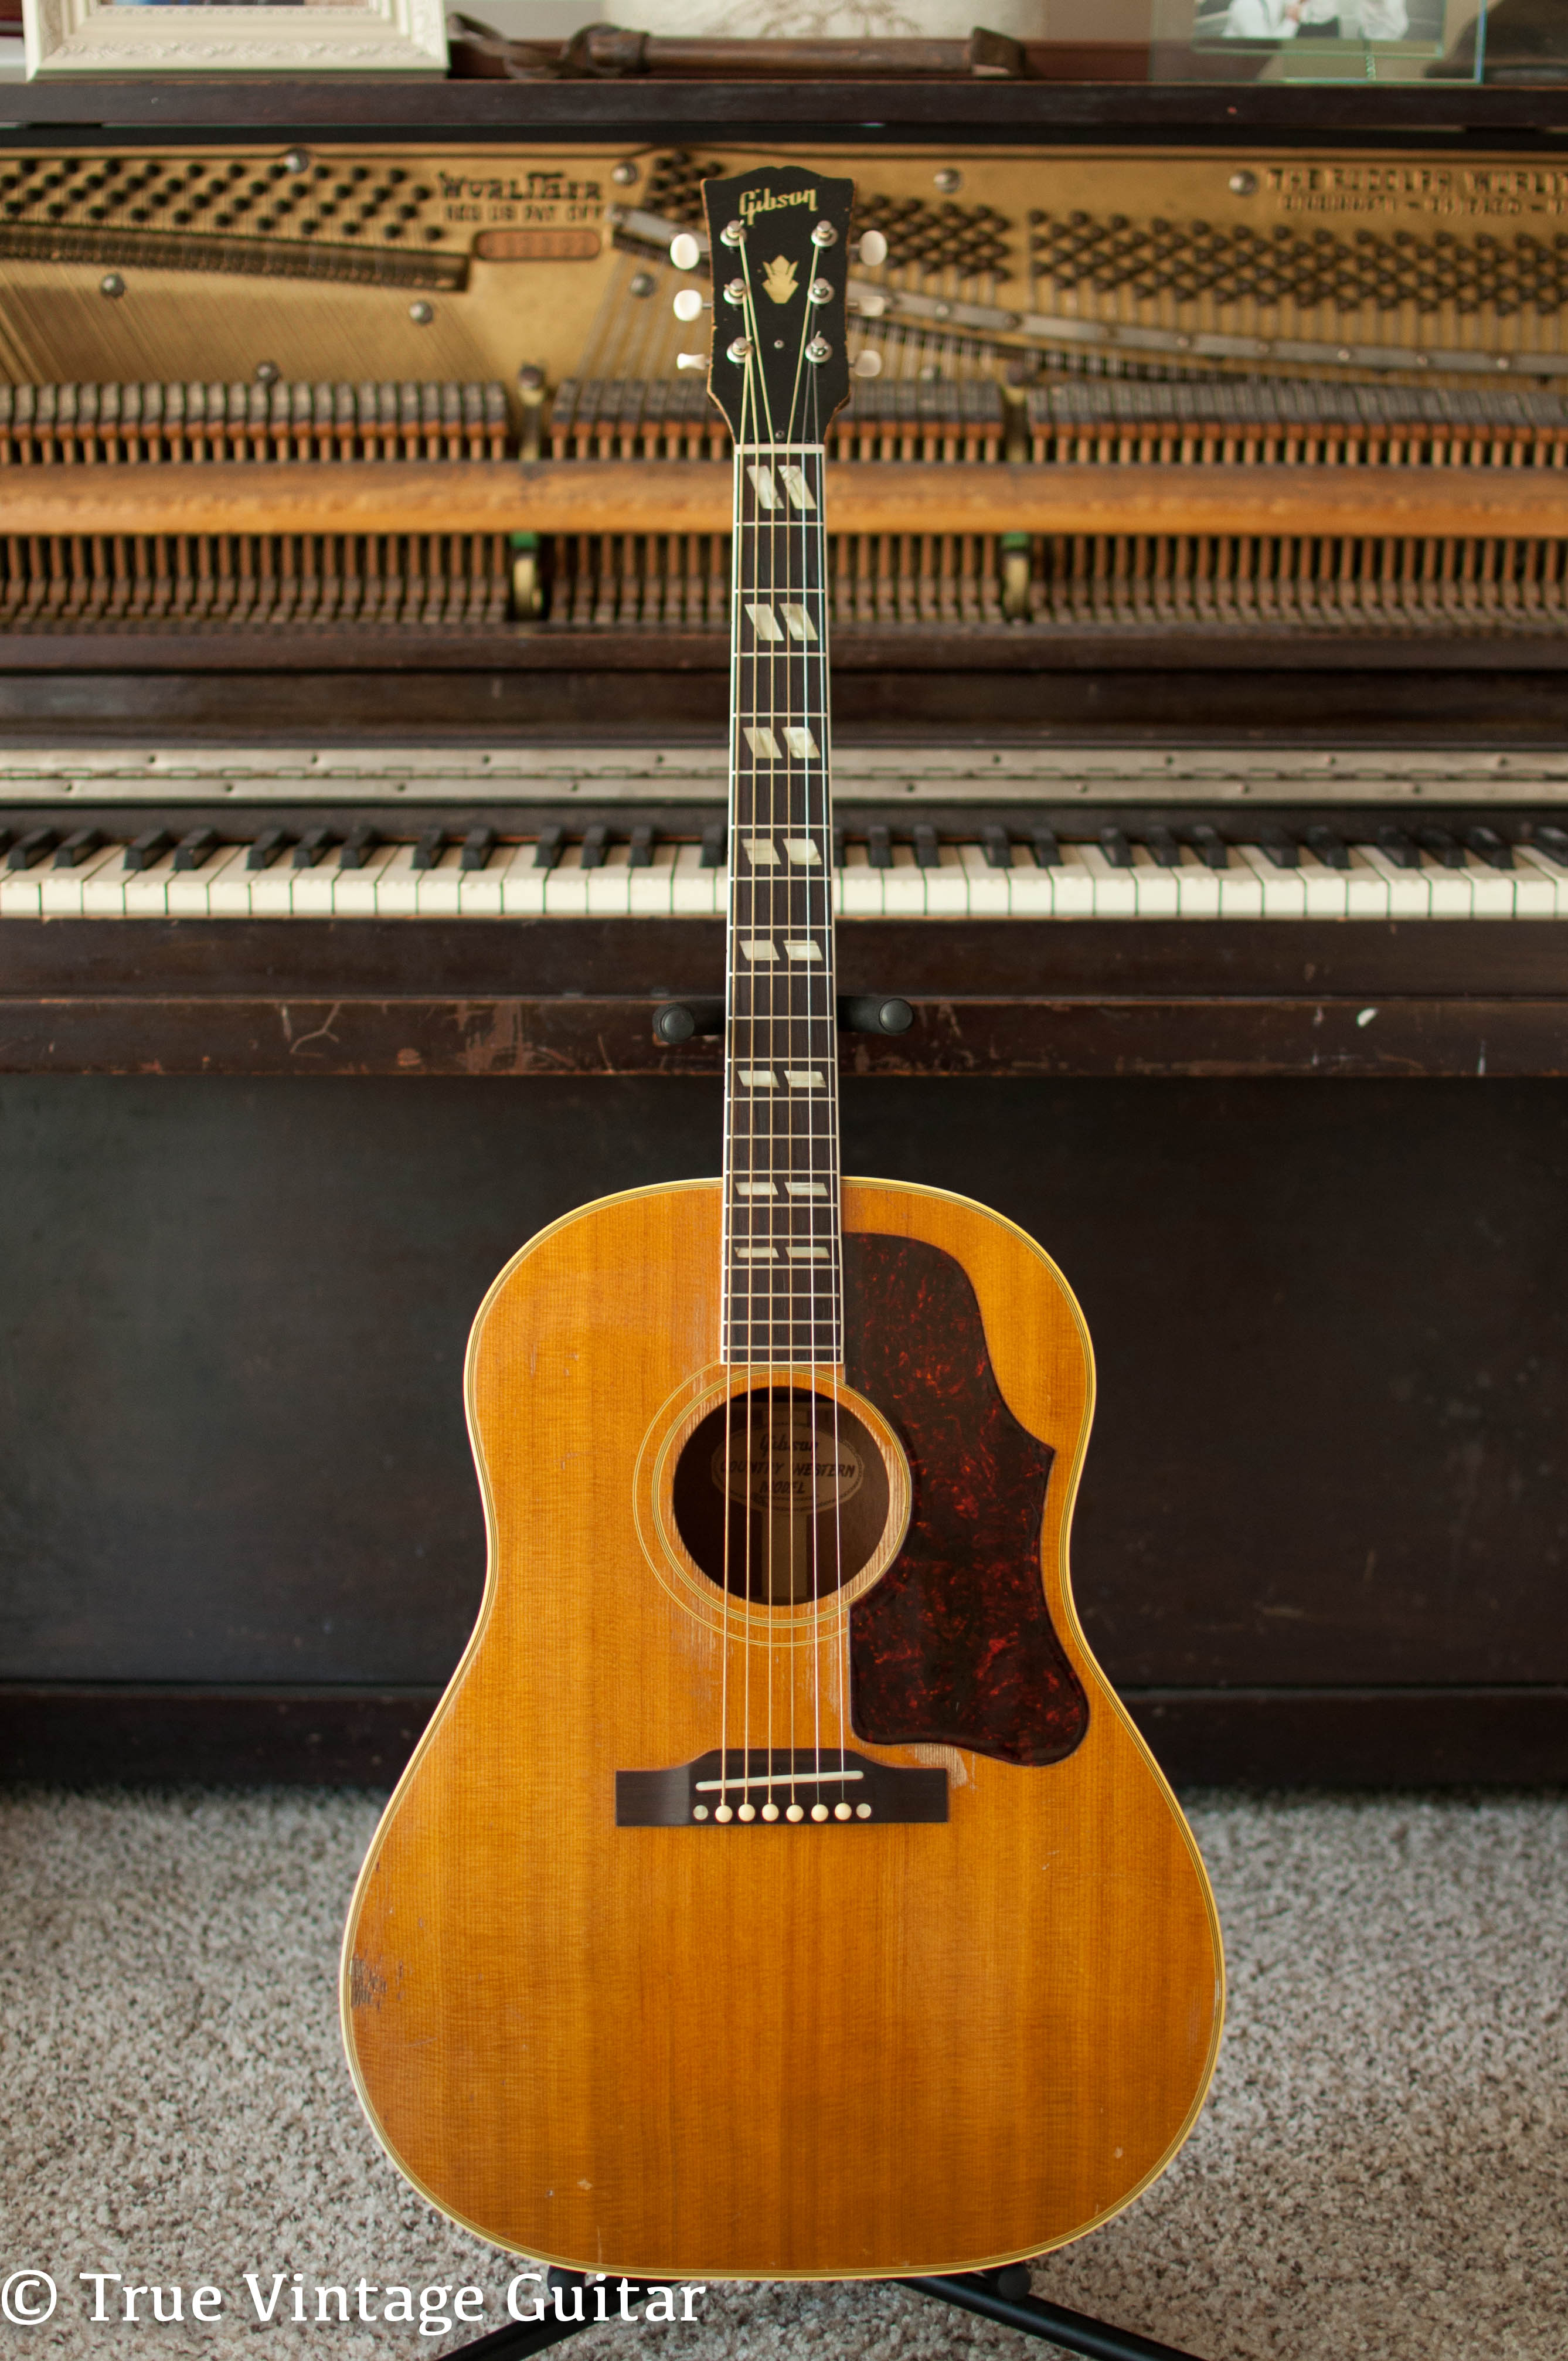 Gibson Guitars For Sale >> Gibson Country Western 1957 Guitar For Sale True Vintage Guitar